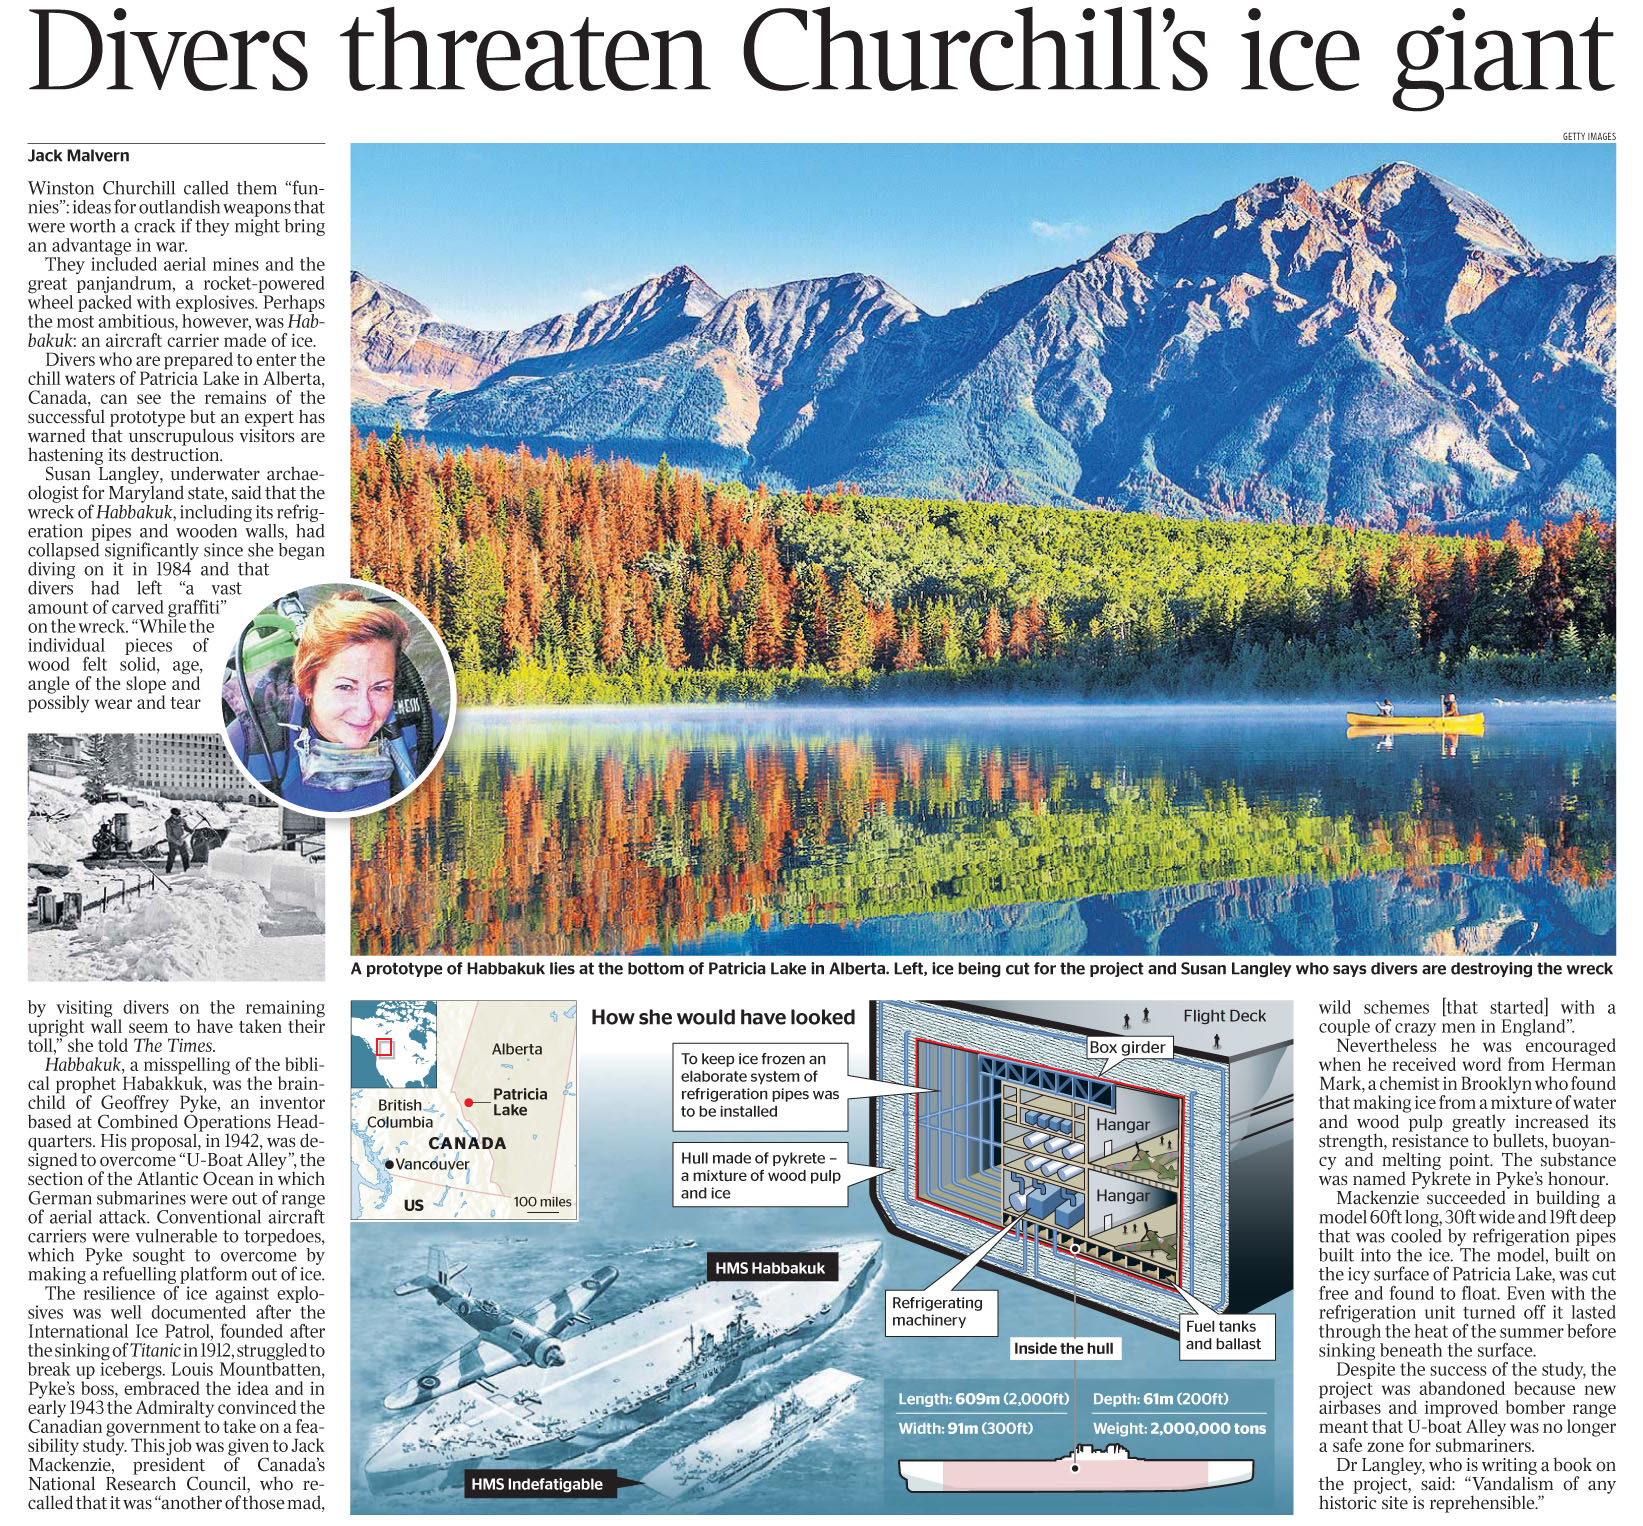 The Times - July 8 2019 Ice Giant 01.jpg